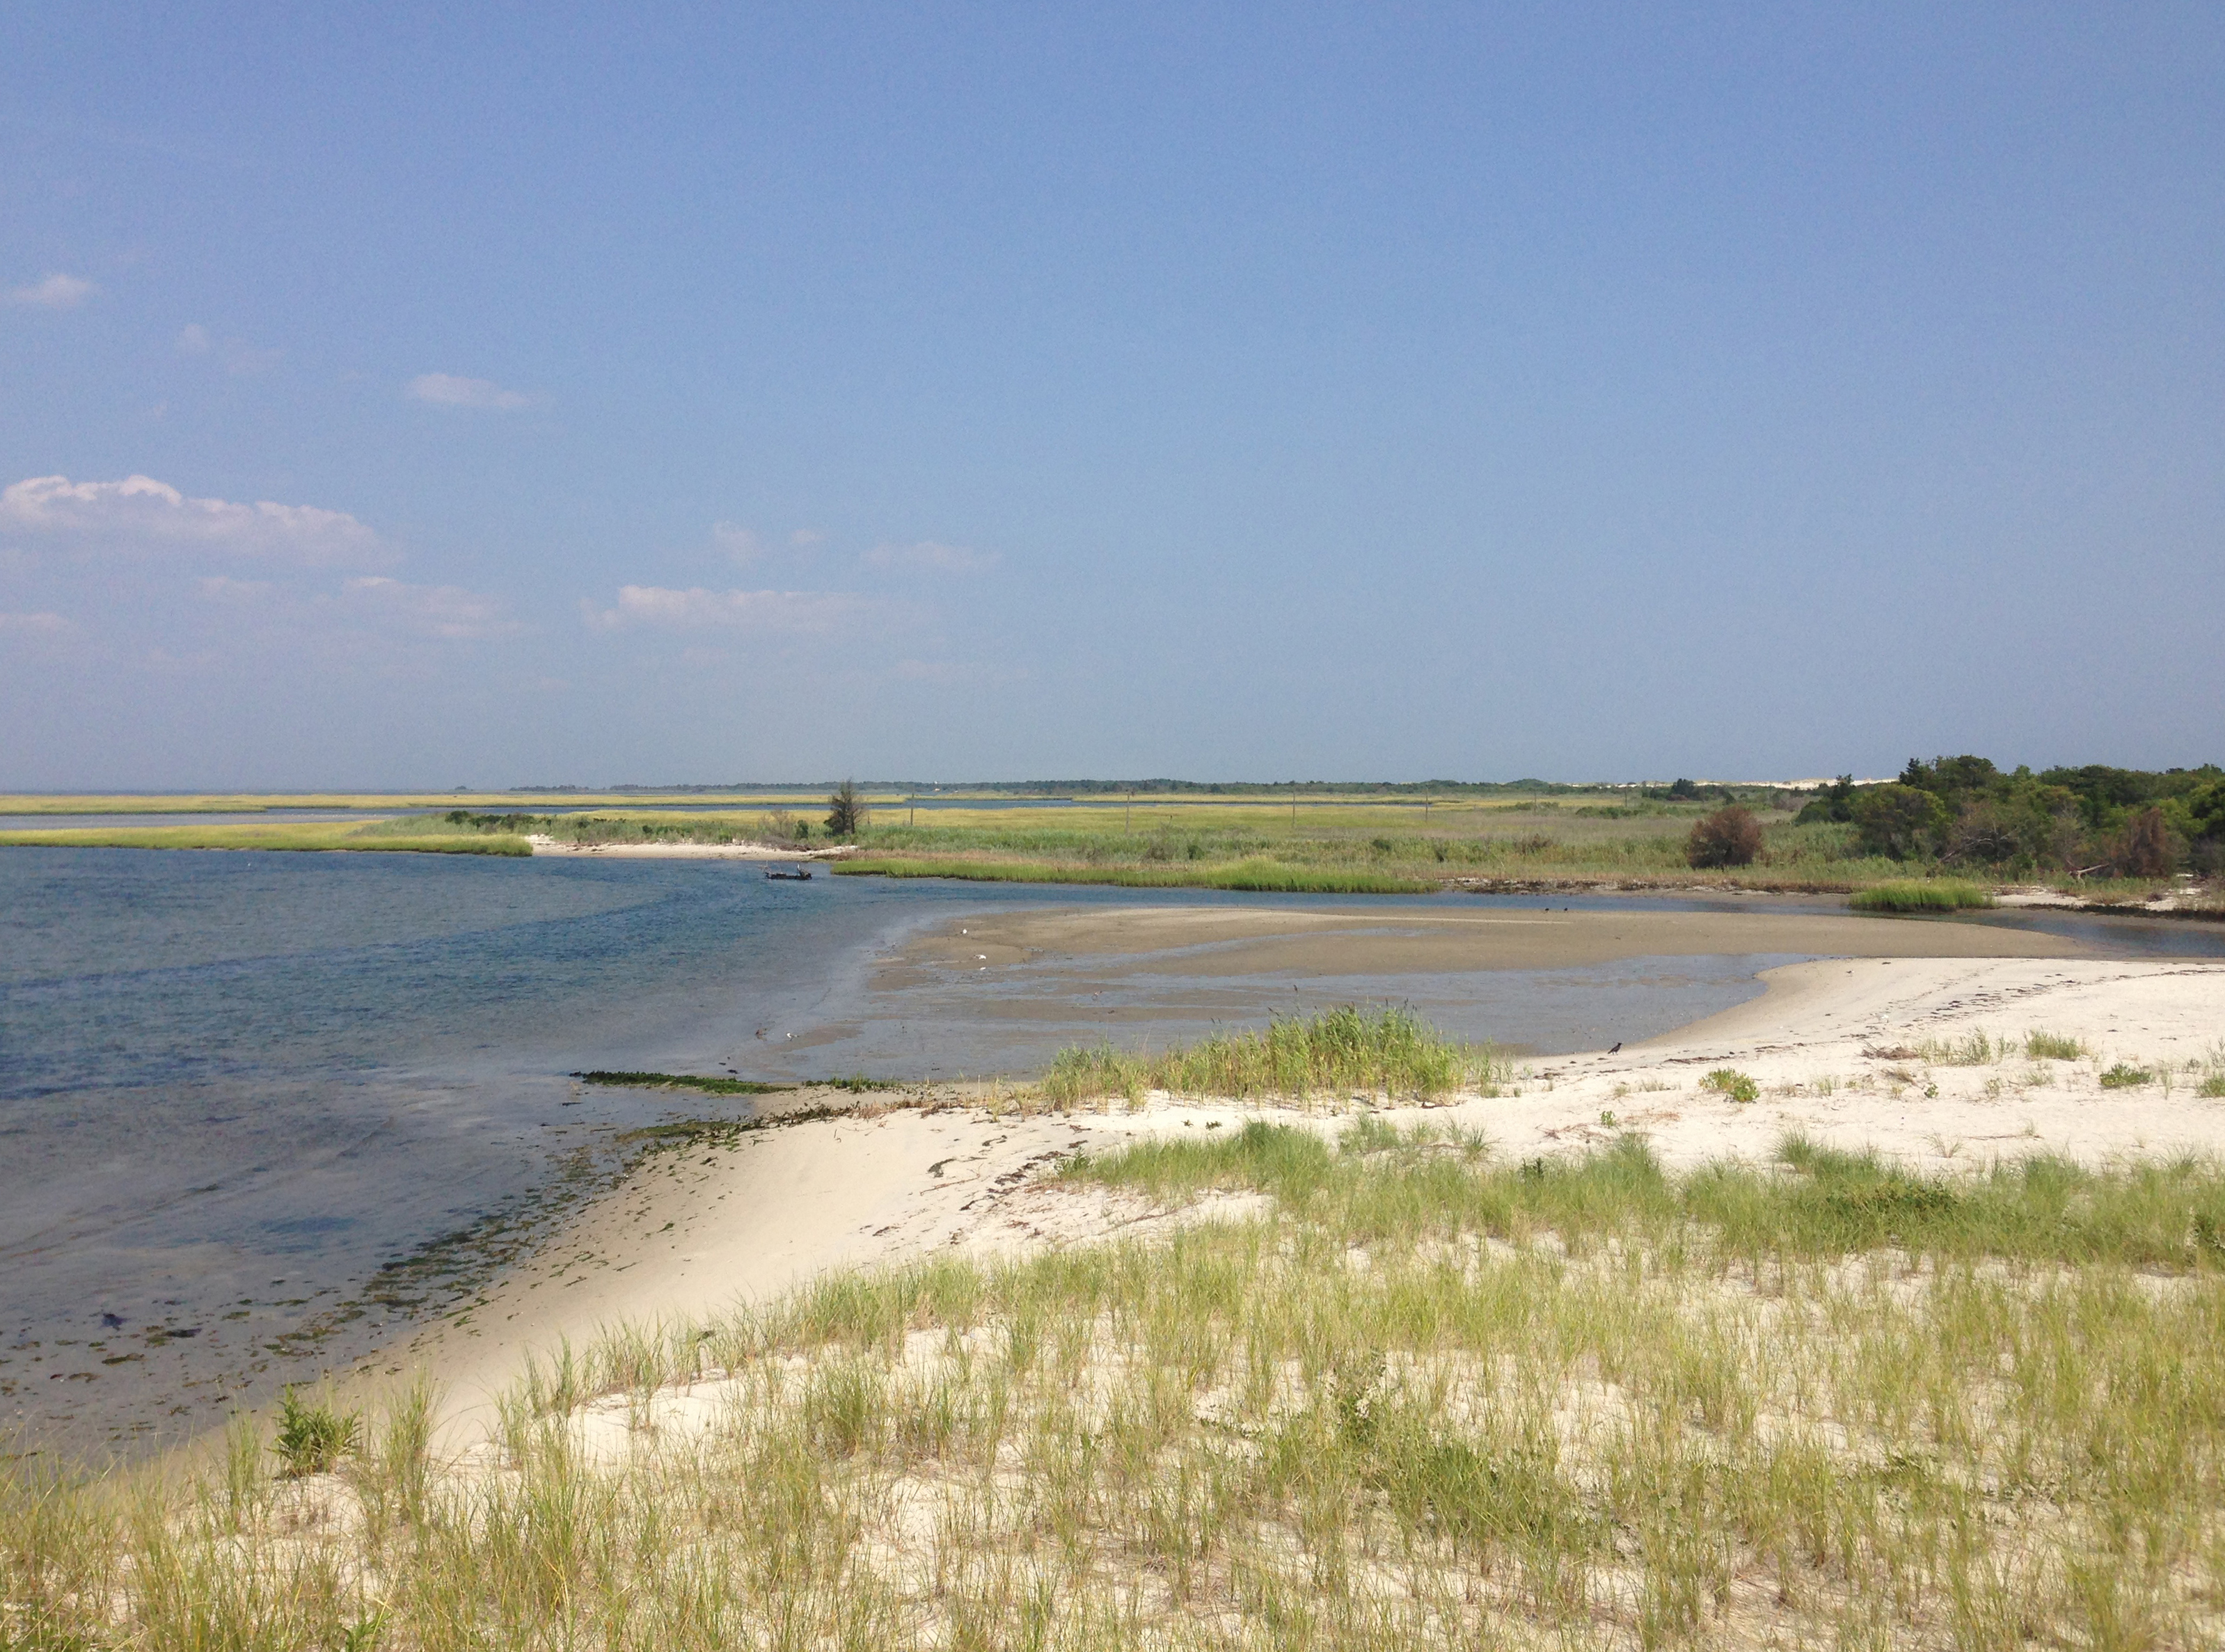 Marshes along Island Beach State Park's bayfront. (Photo: Wikimedia Commons)